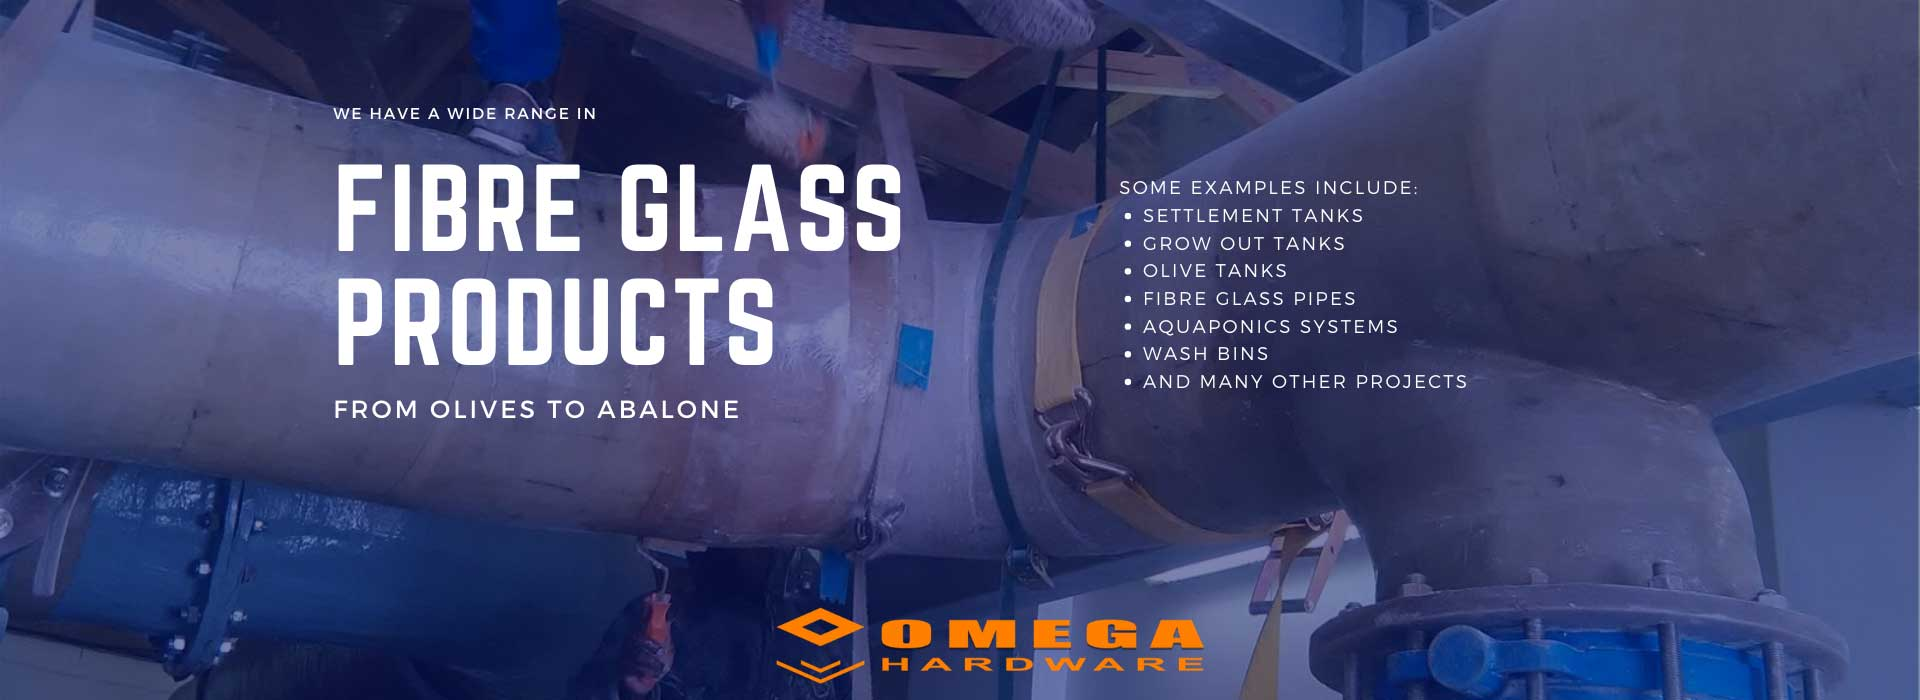 fibre glass products, fibre glass resin, hardener and mat, chop strand mat, repairs of fibre glass doors. repairs of fibre glass pipes, suppliers of fibre glass products Overberg, Omega Gansbaai, Omega Hardware